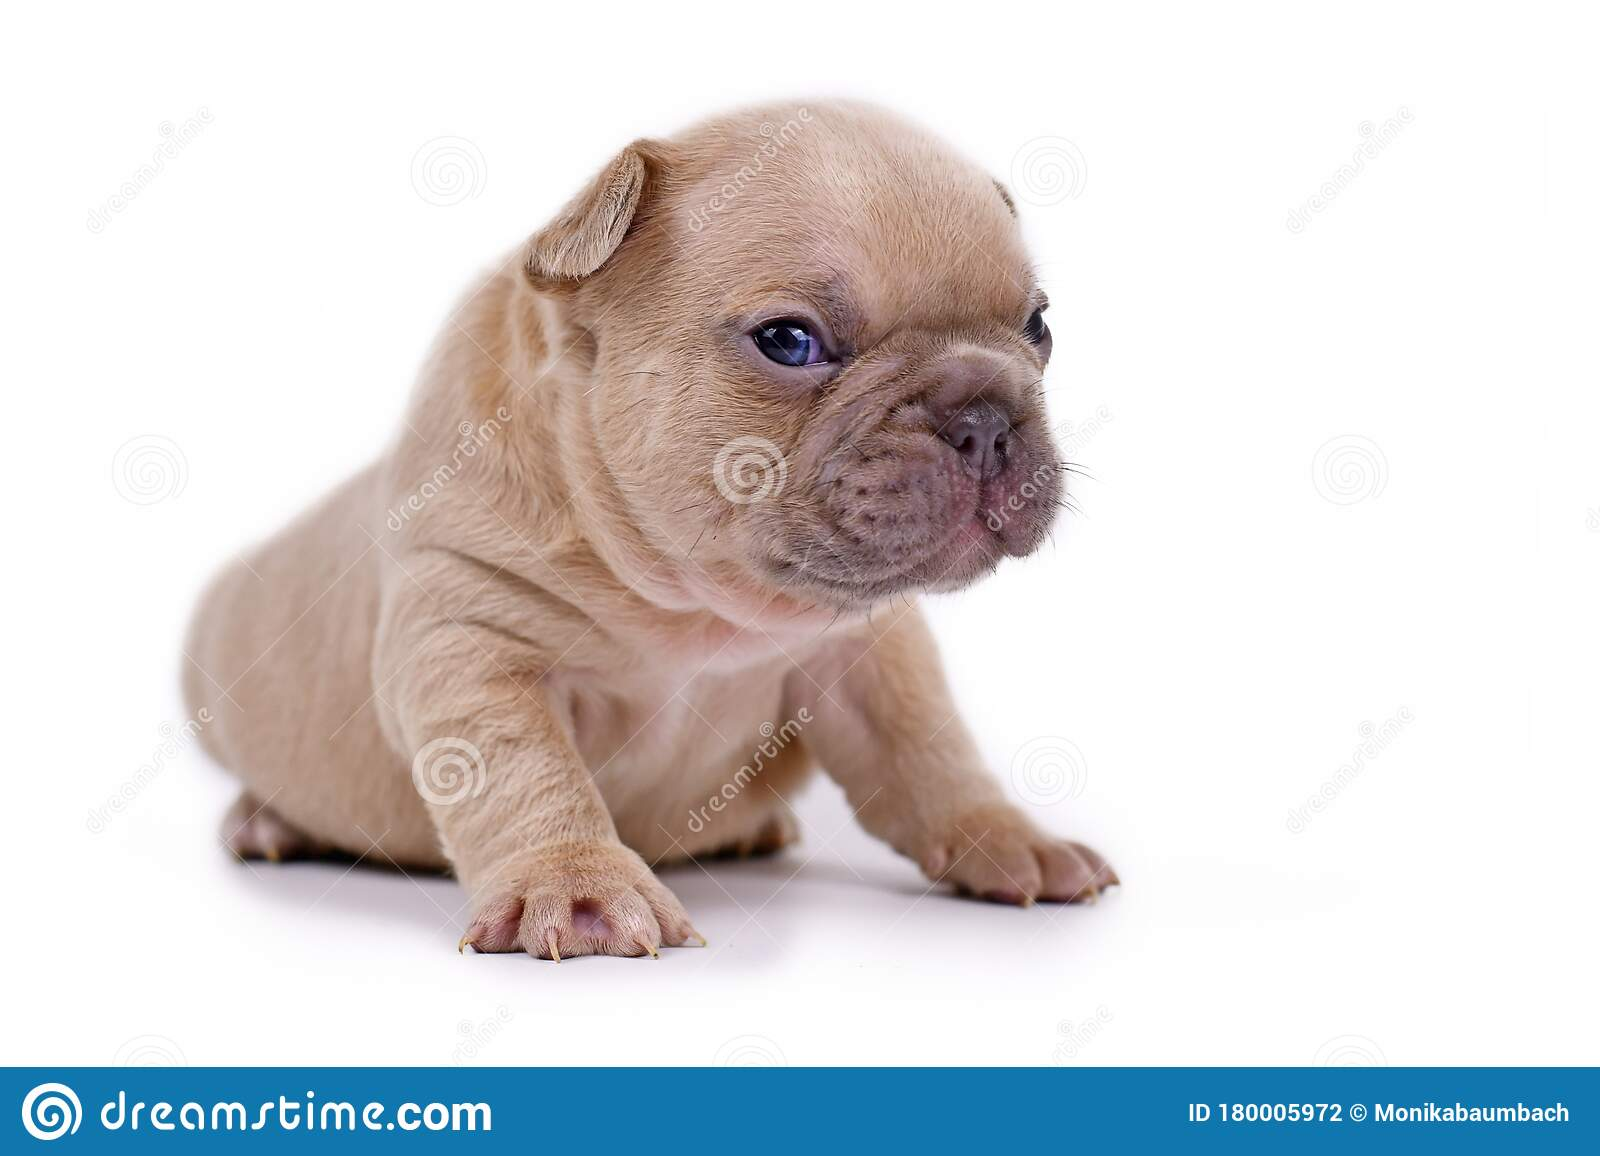 Cute Cream Lilac Fawn Colored 3 Weeks Old French Bulldog Dog Puppy With Blue Eyes Isolated On White Background Stock Photo Image Of Isolated Little 180005972